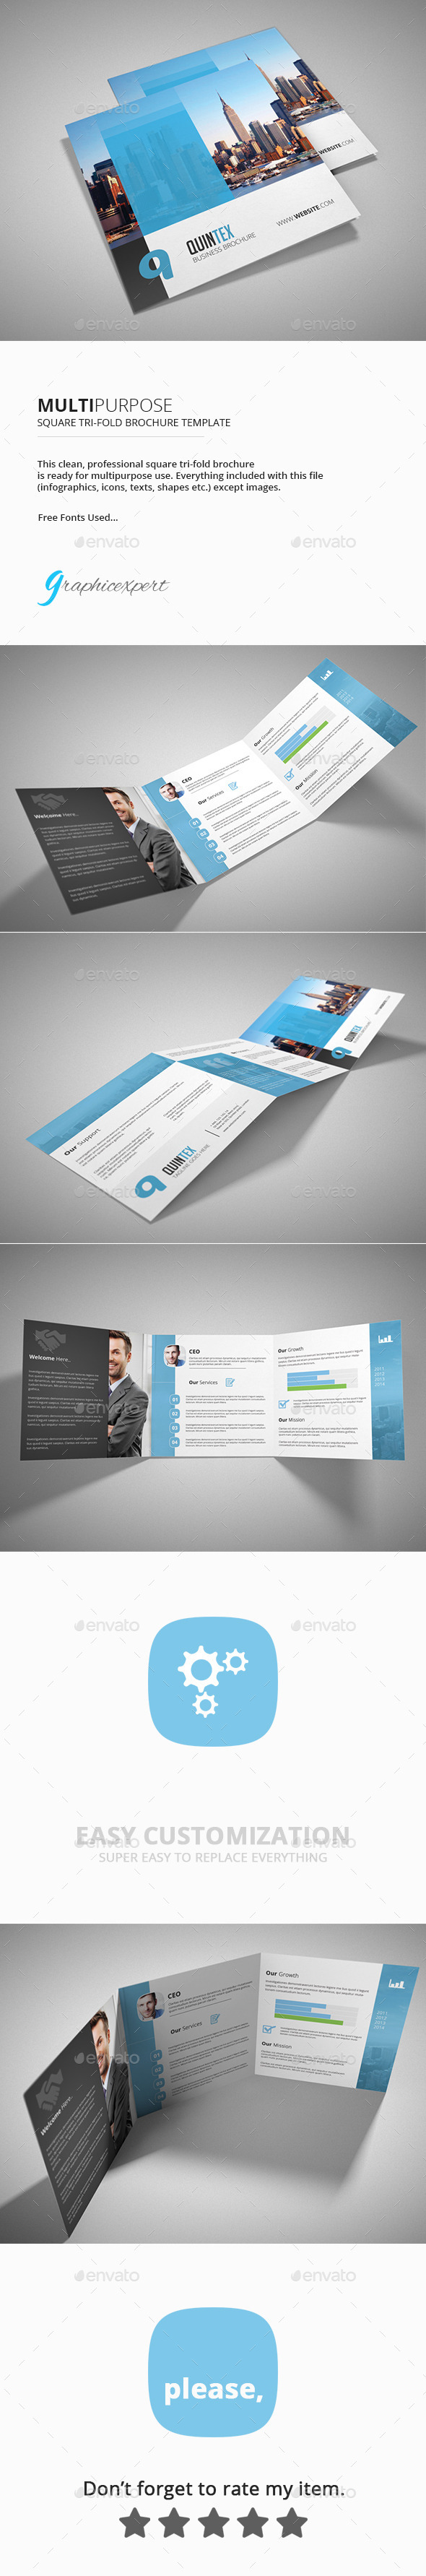 Square Tri-Fold Brochure Multipurpose